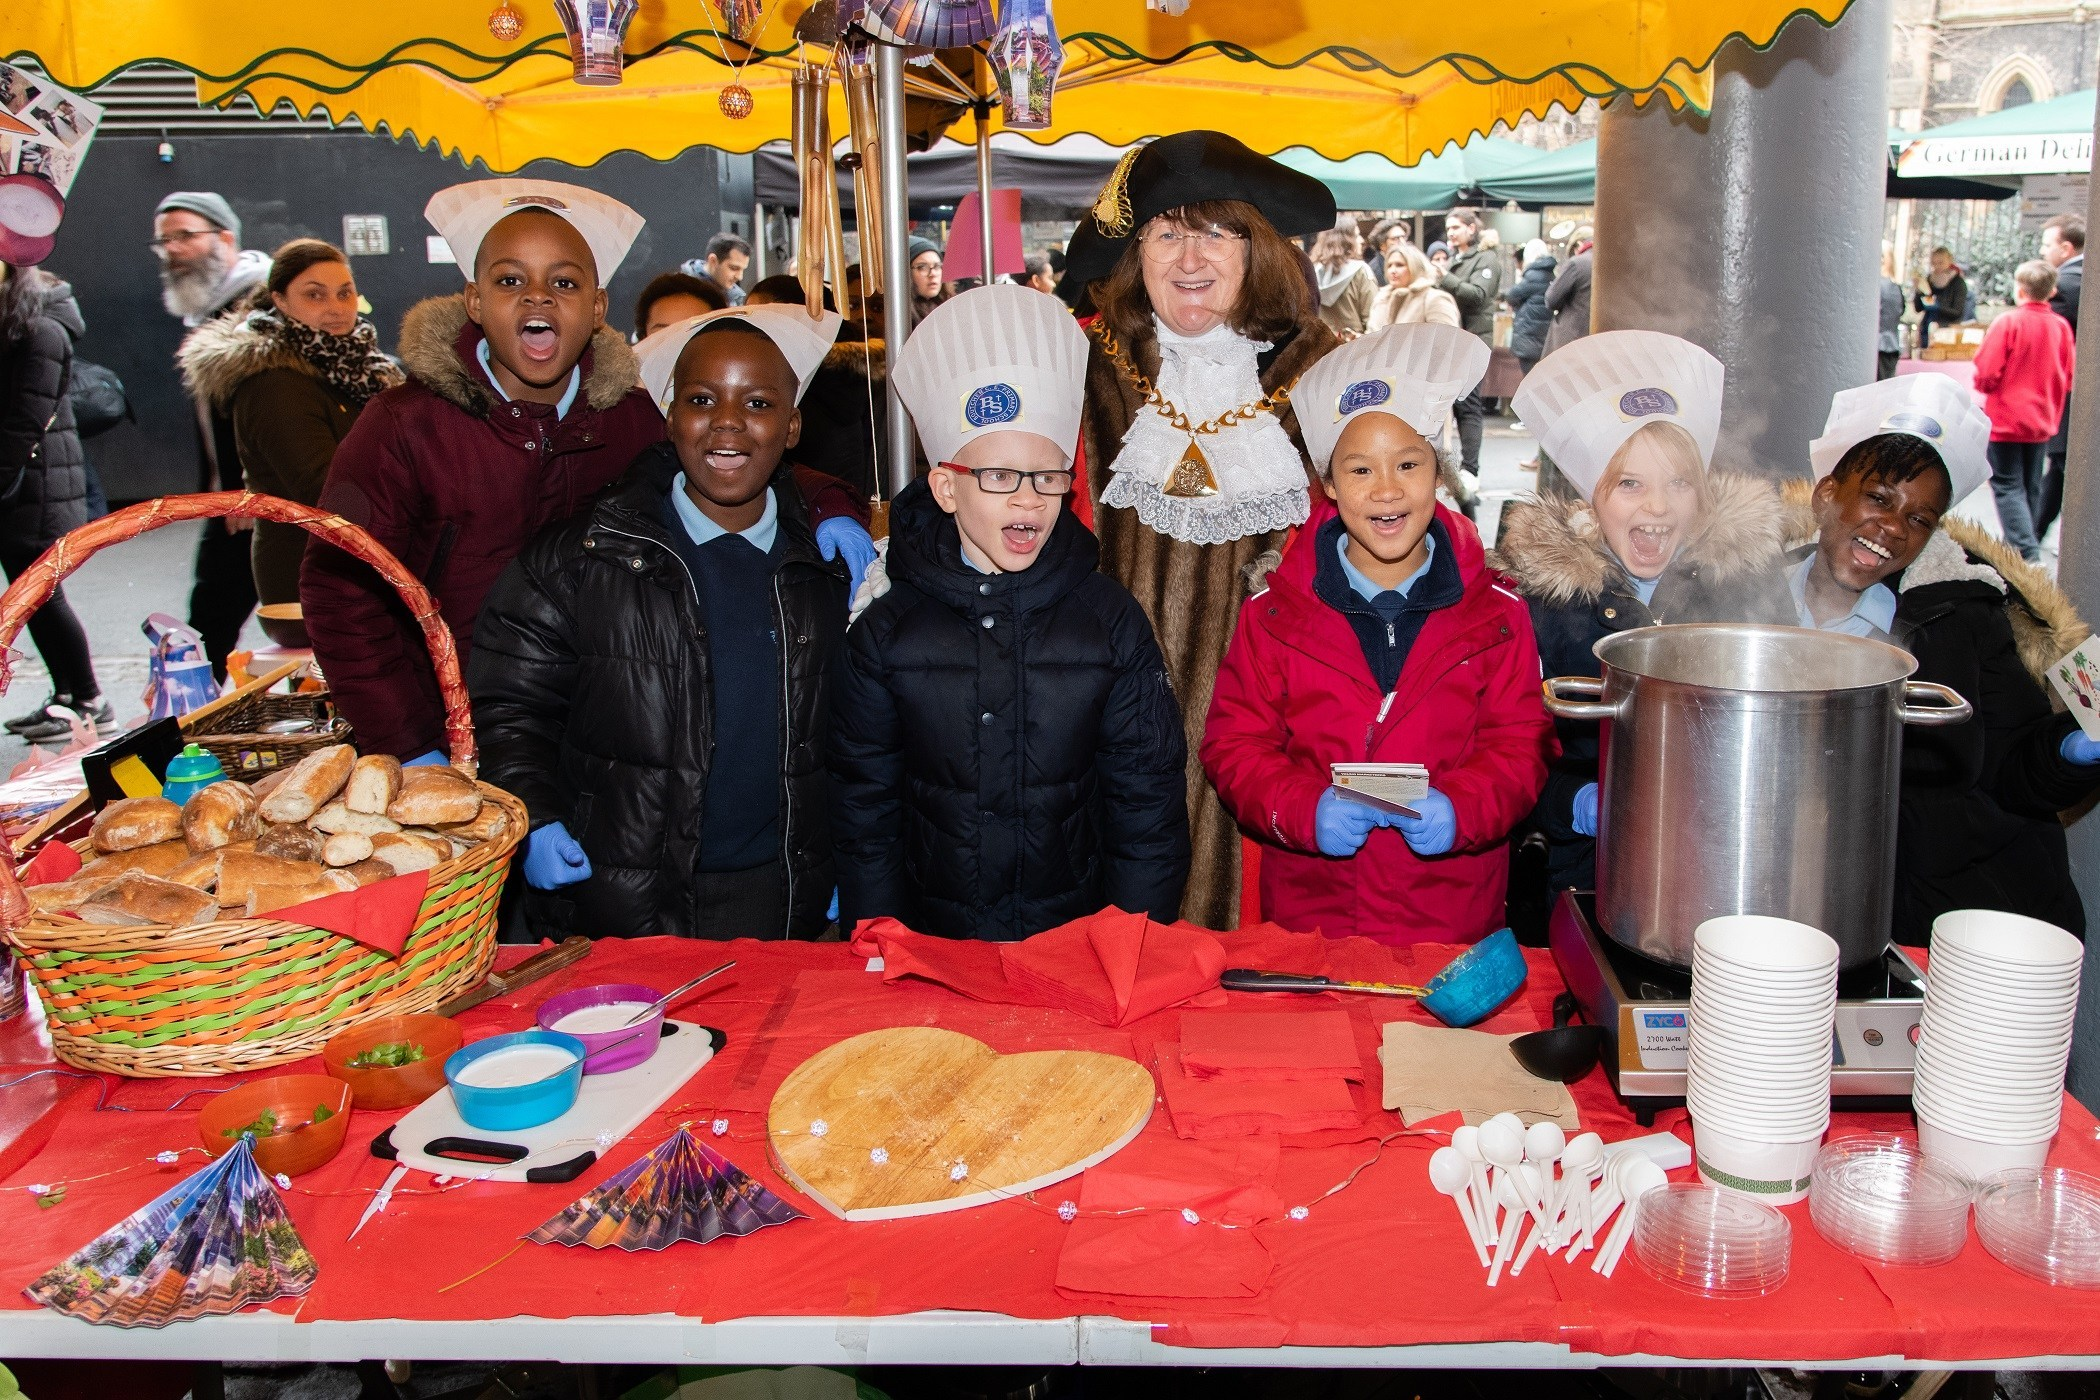 School kids take over Borough Market and cook up waste food to highlight food poverty